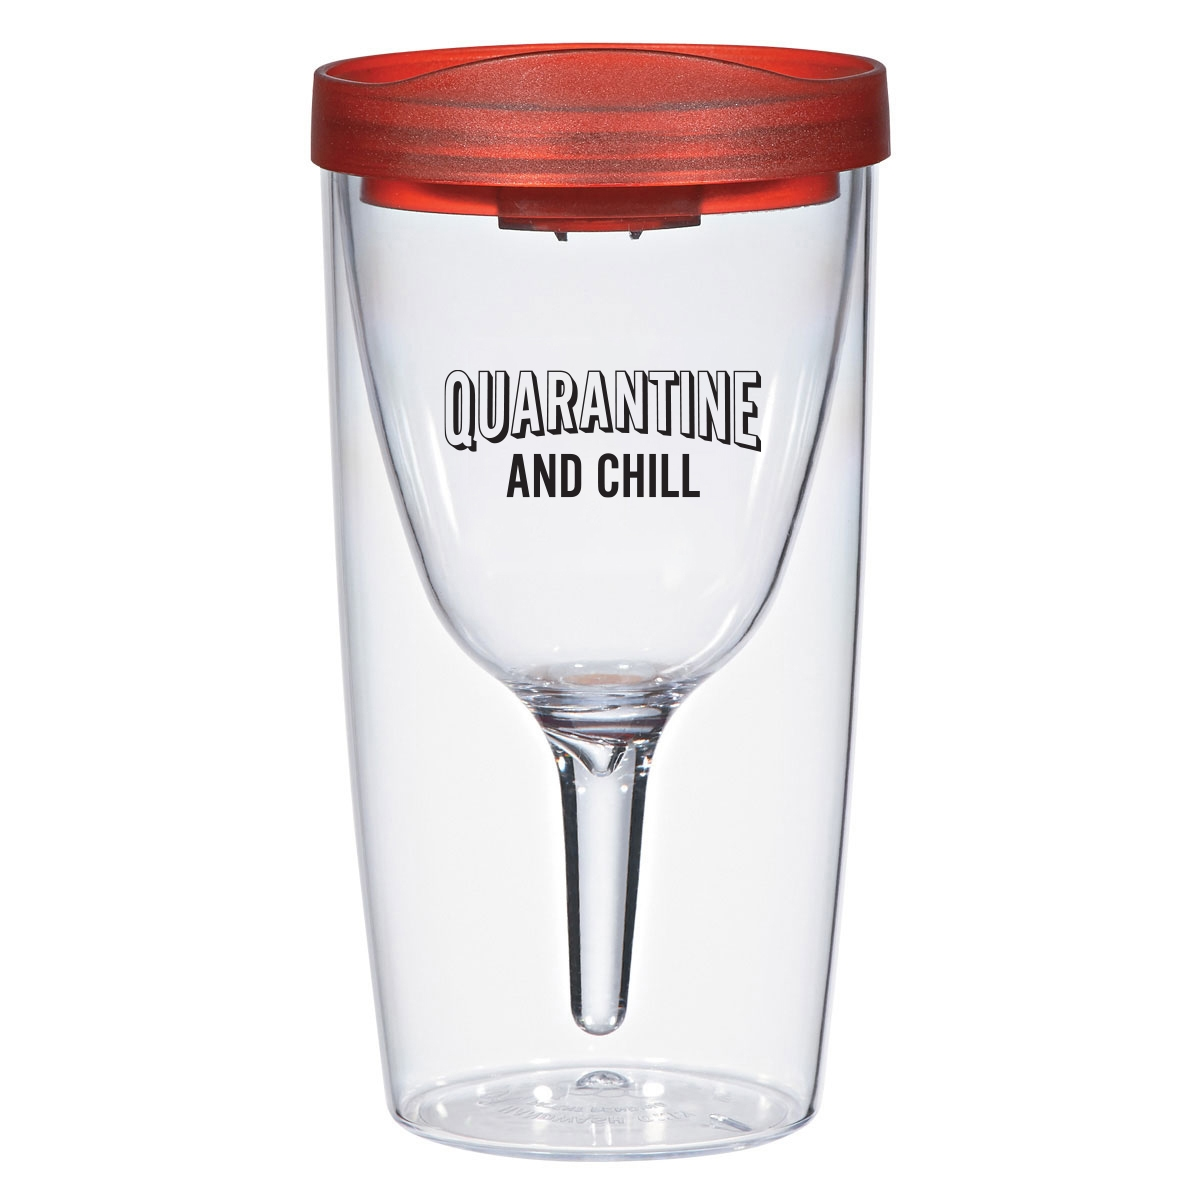 Travel wine tumbler with funny quarantine quote